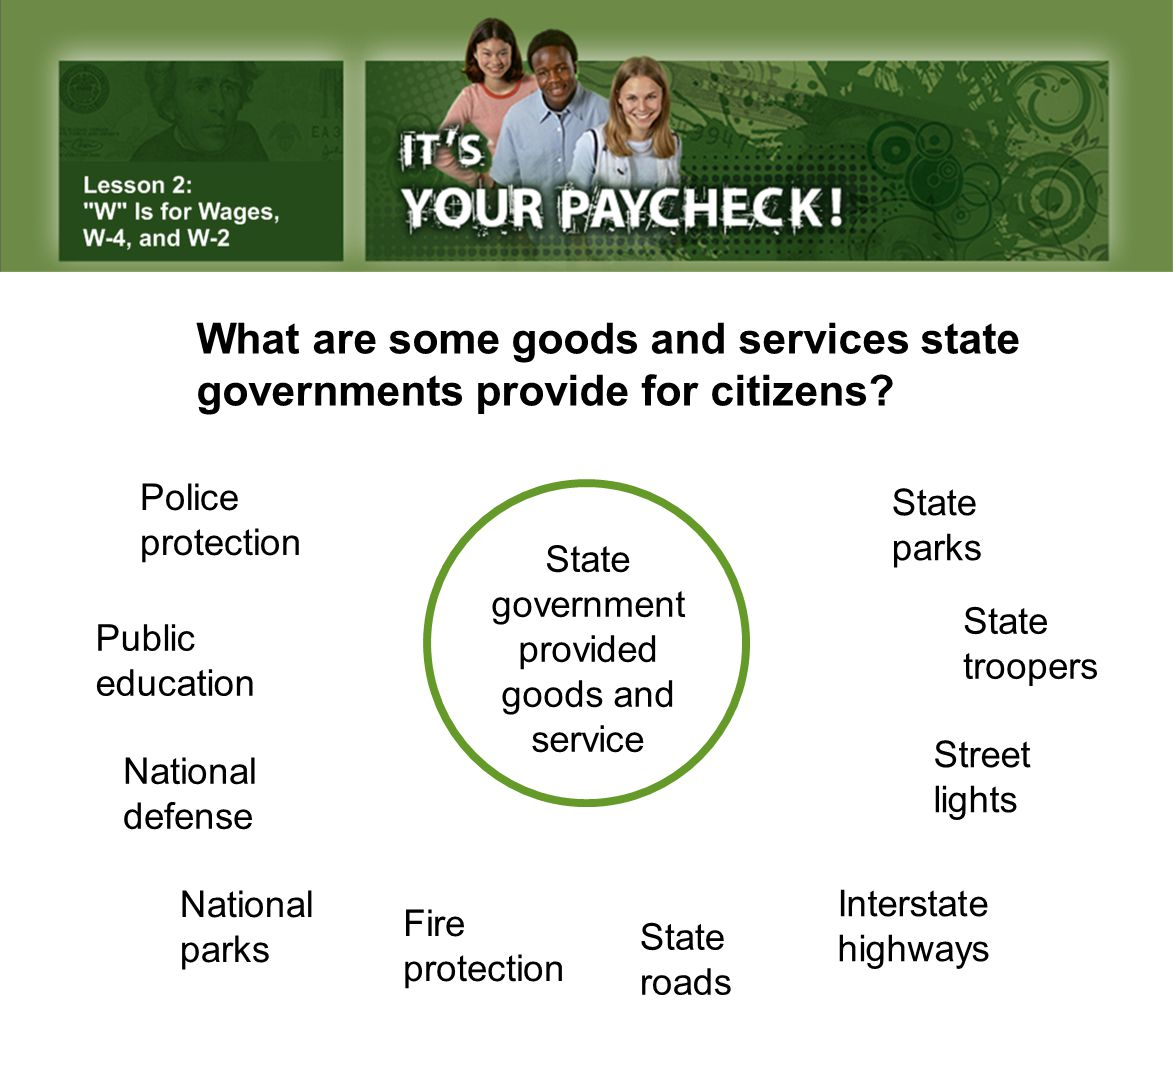 government provided goods and service